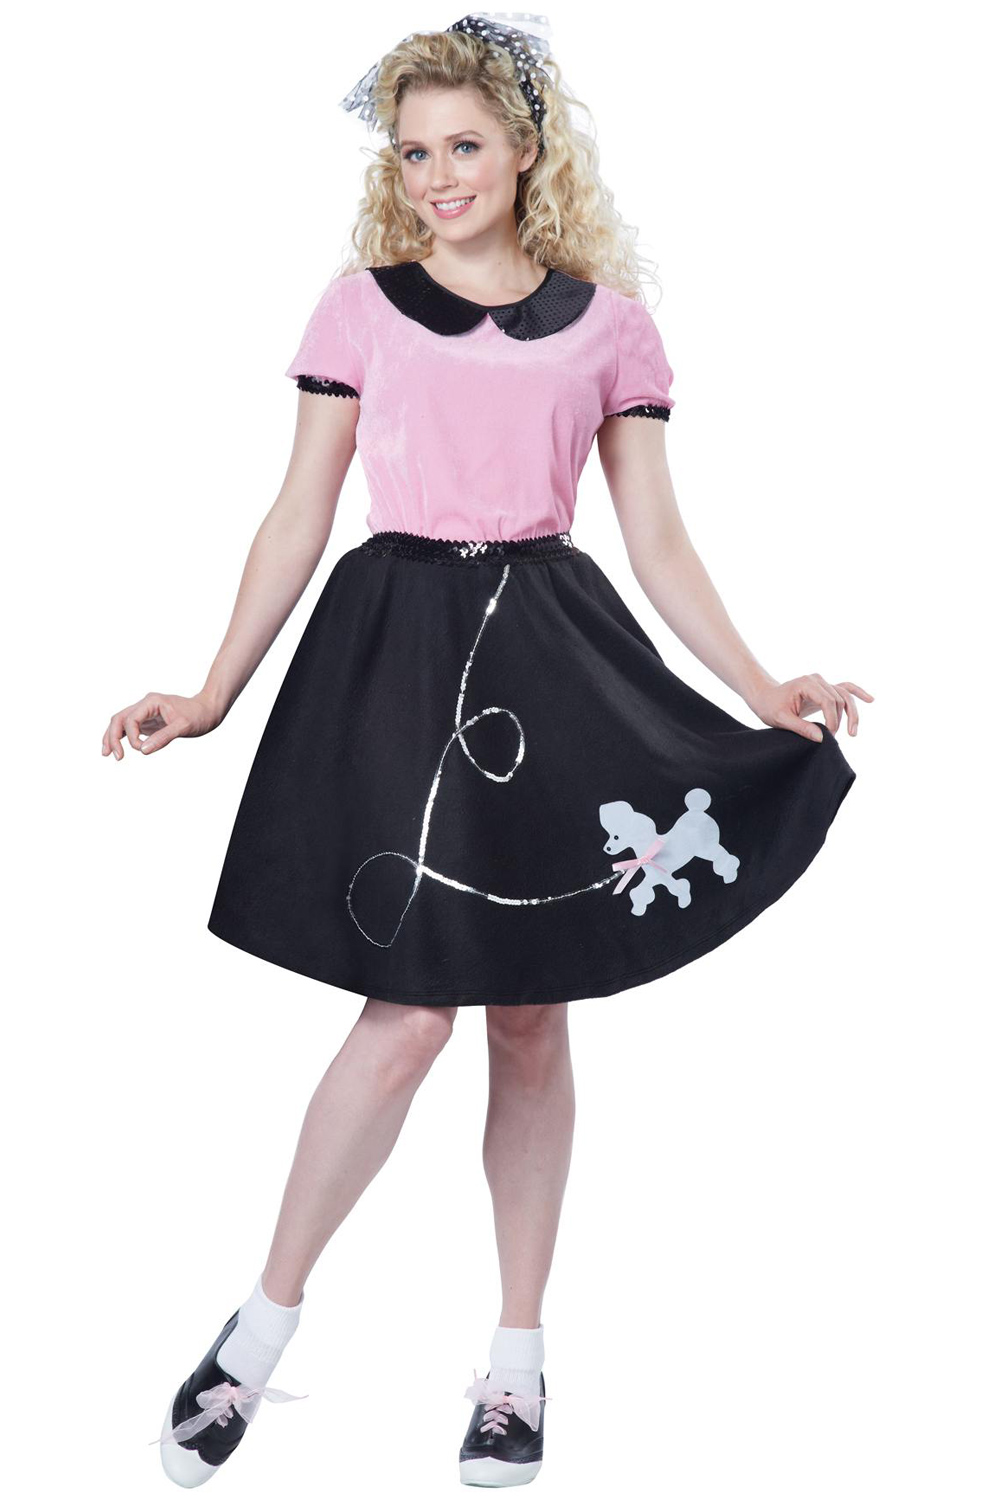 50 Halloween Hair And Makeup Tutorials: Brand New Adult 50's Hop With Poodle Skirt Halloween